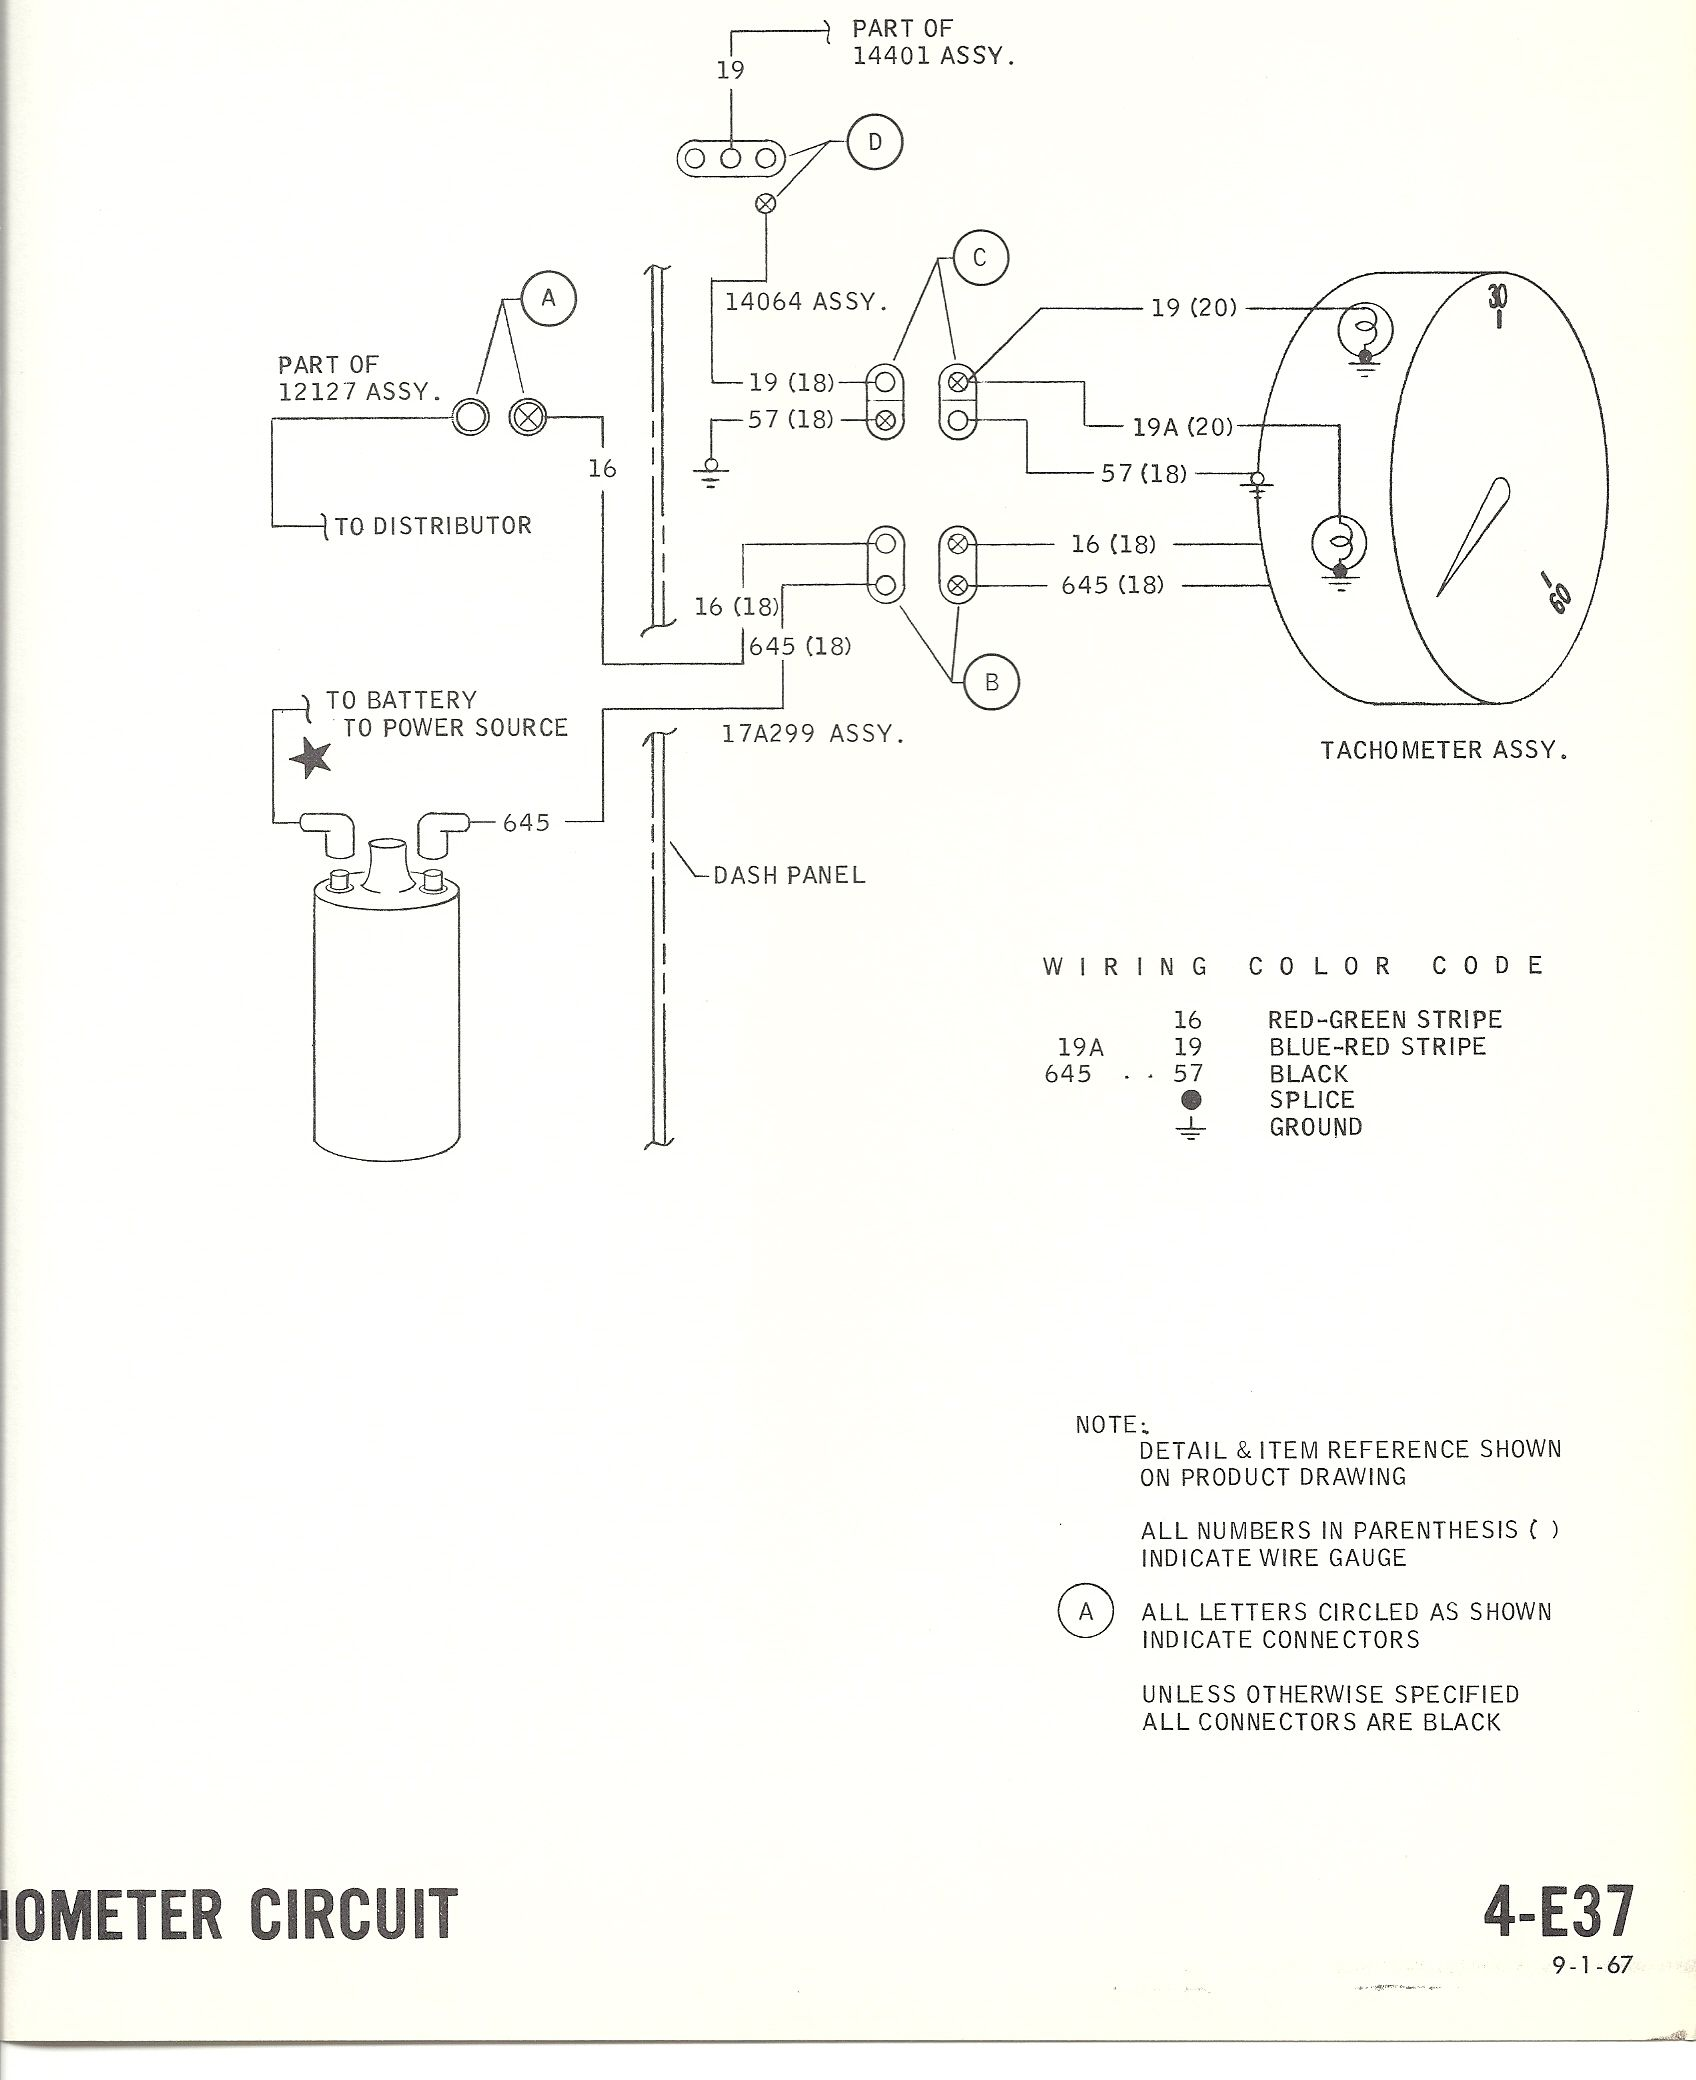 2b2f8e488a4c6a6b870c00f5af30de6c 1967 mustang wiring to tachometer 1968 mustang wiring tachometer wiring diagram for motorcycle at gsmx.co